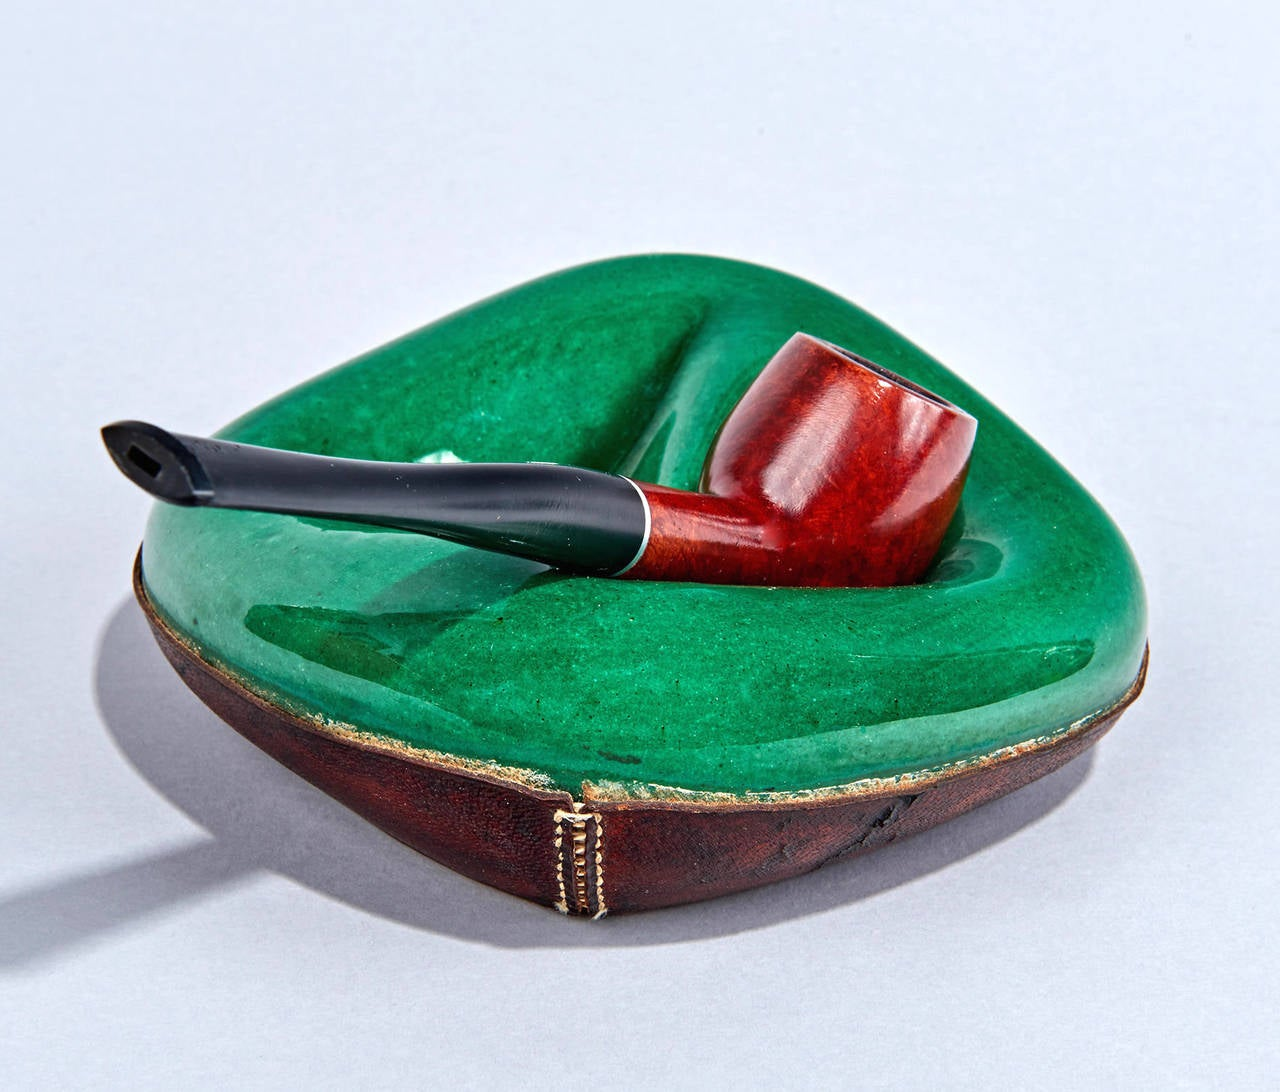 Ceramic and leather pipe holder by georges jouve for sale at 1stdibs